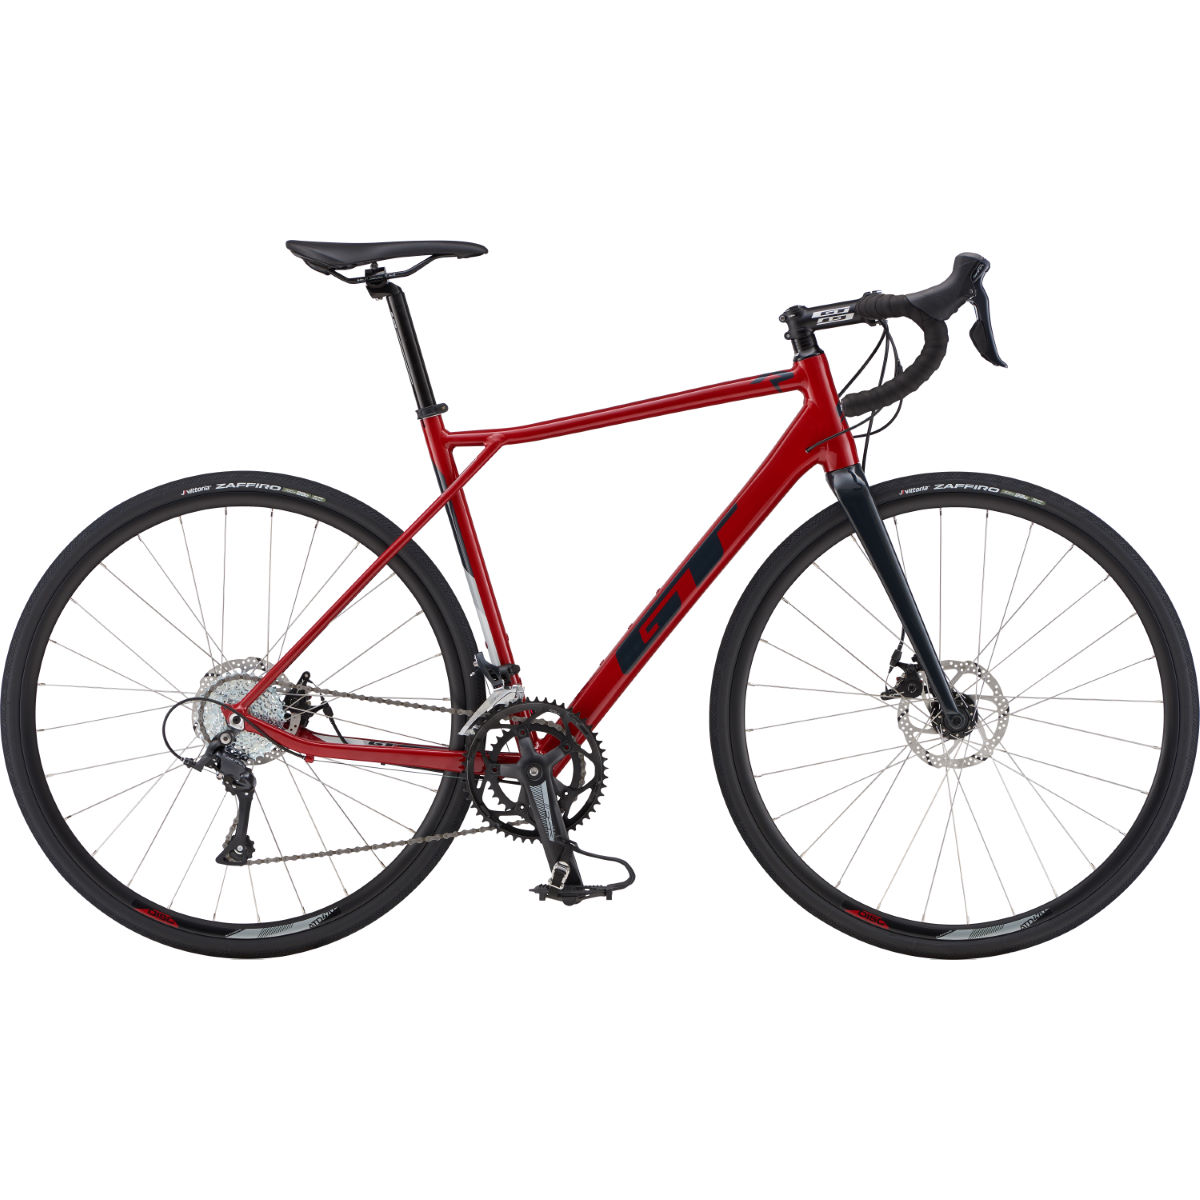 Image of Vélo de route GT GTR Comp (2019) - Large Gloss Red & Black